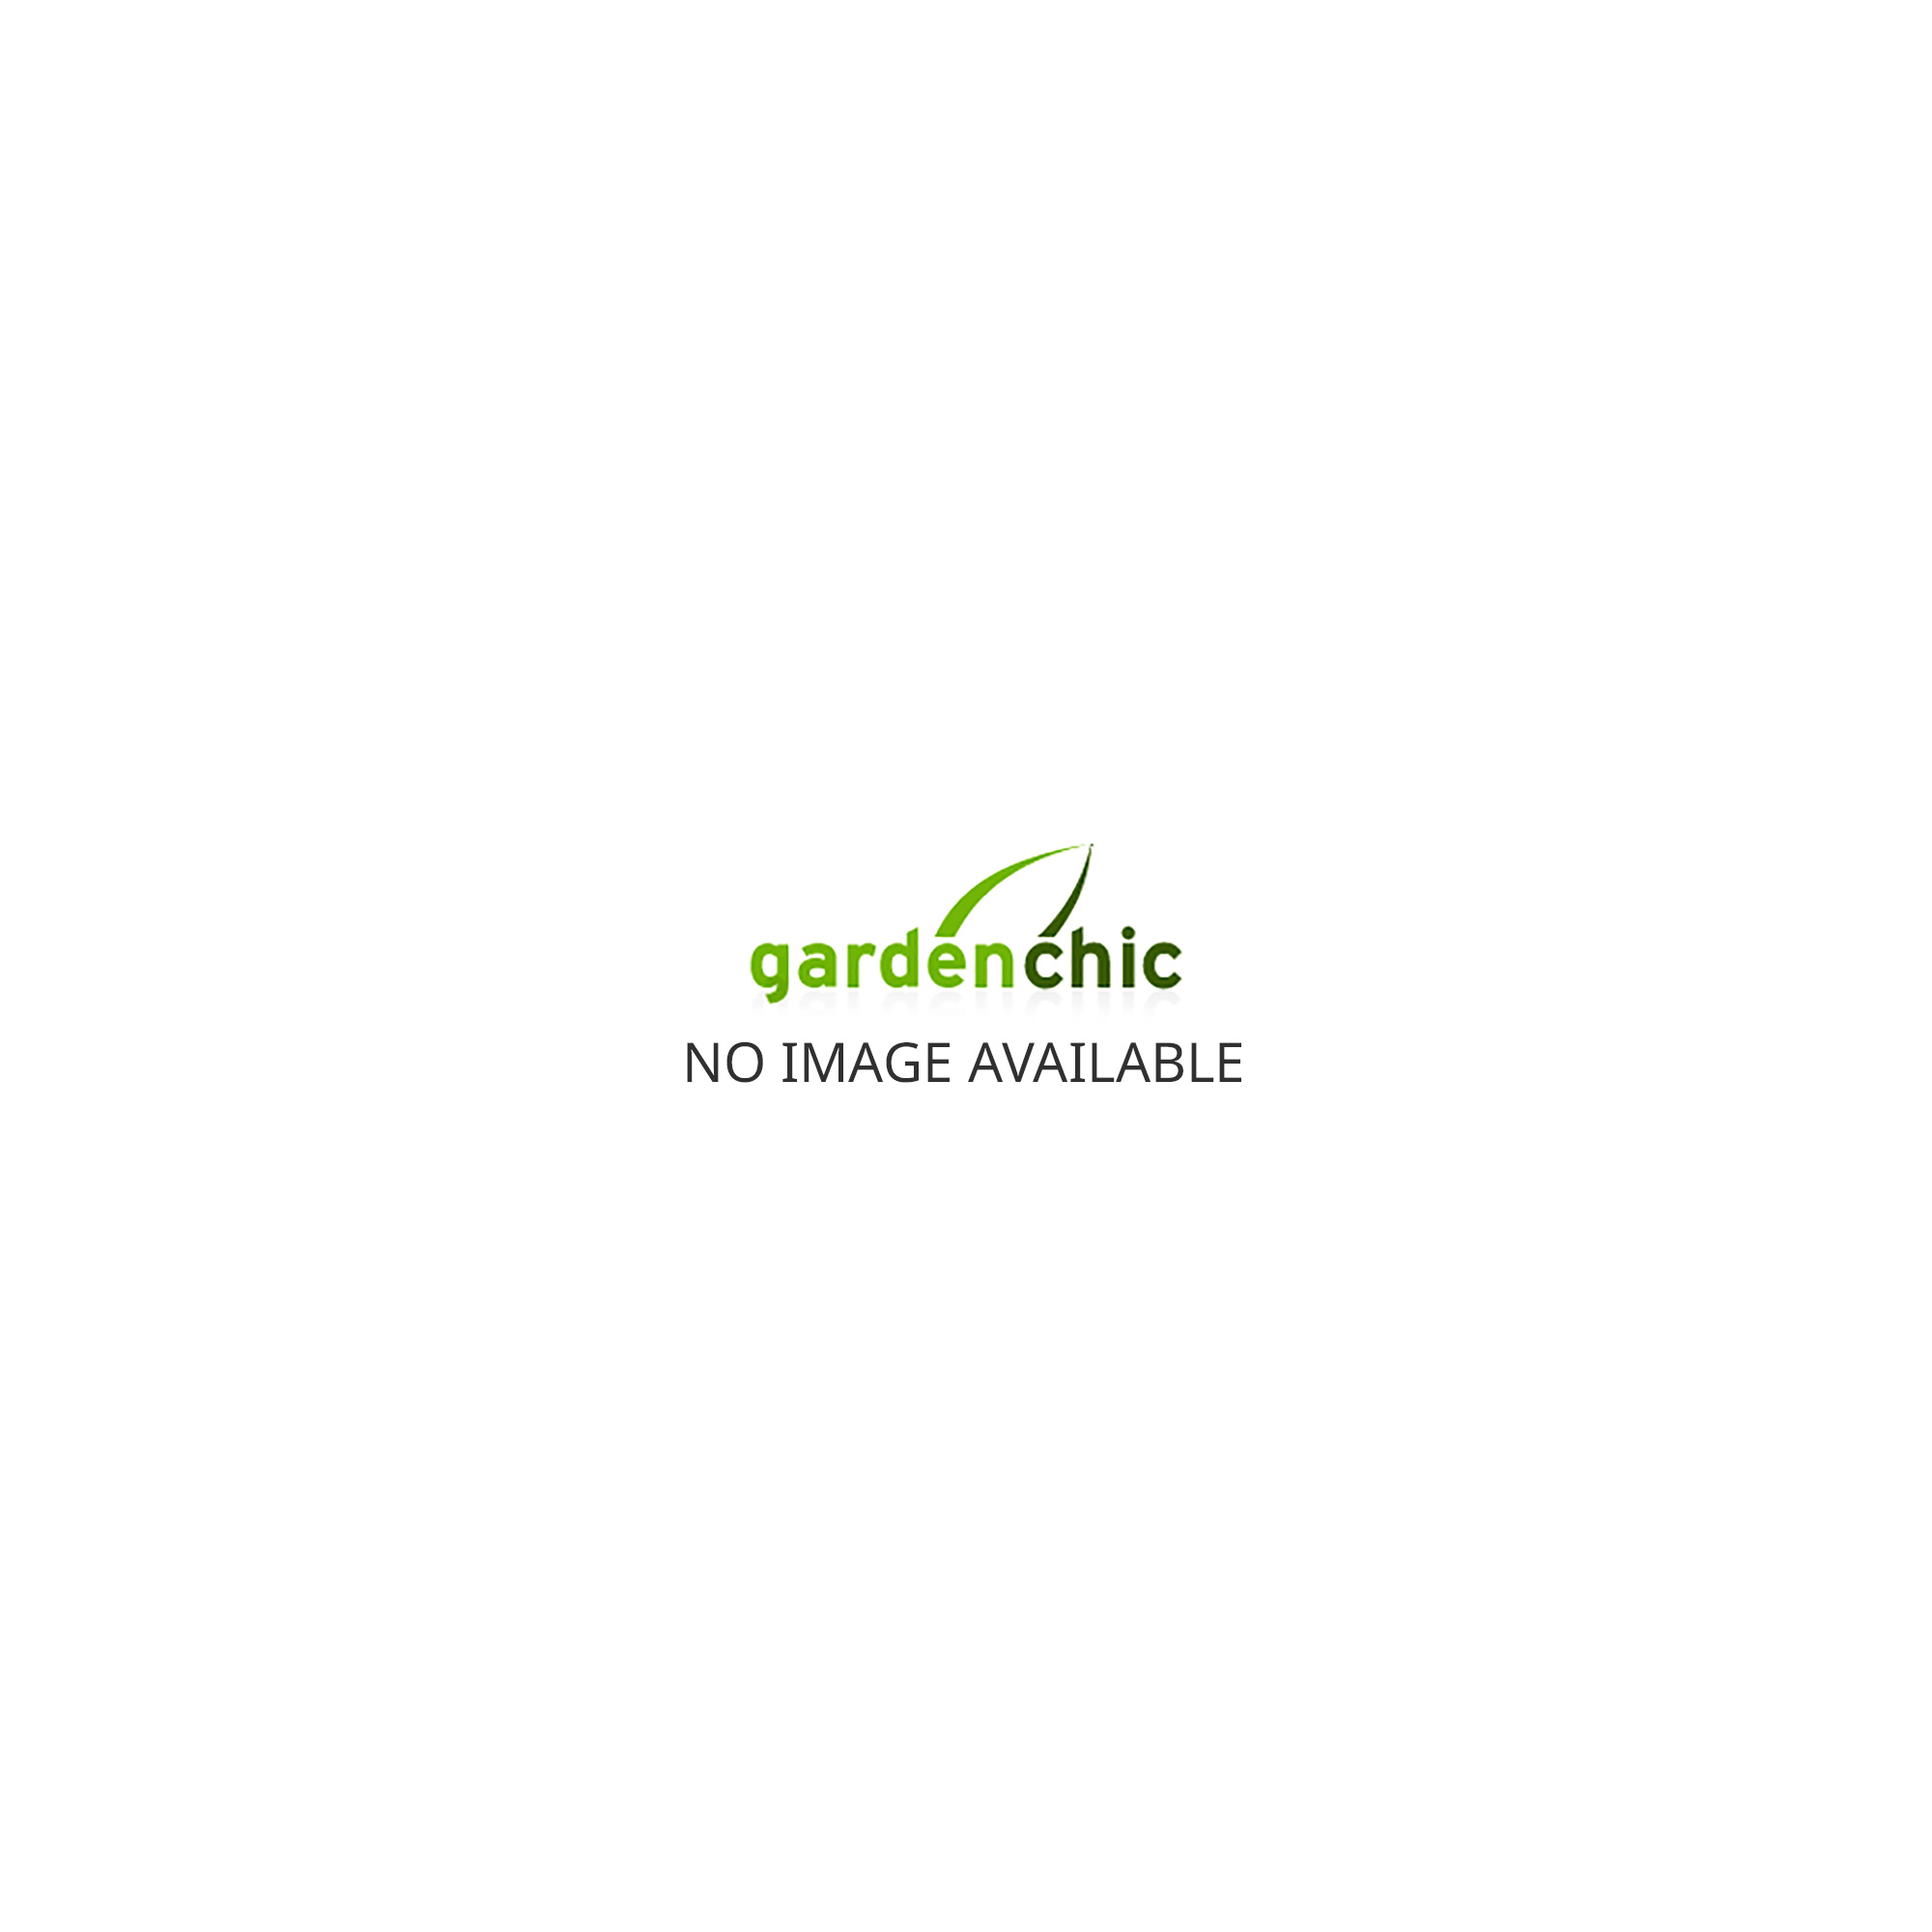 Vitavia Apollo 6200 Greenhouse - Silver FREE Staging until APRIL 2018